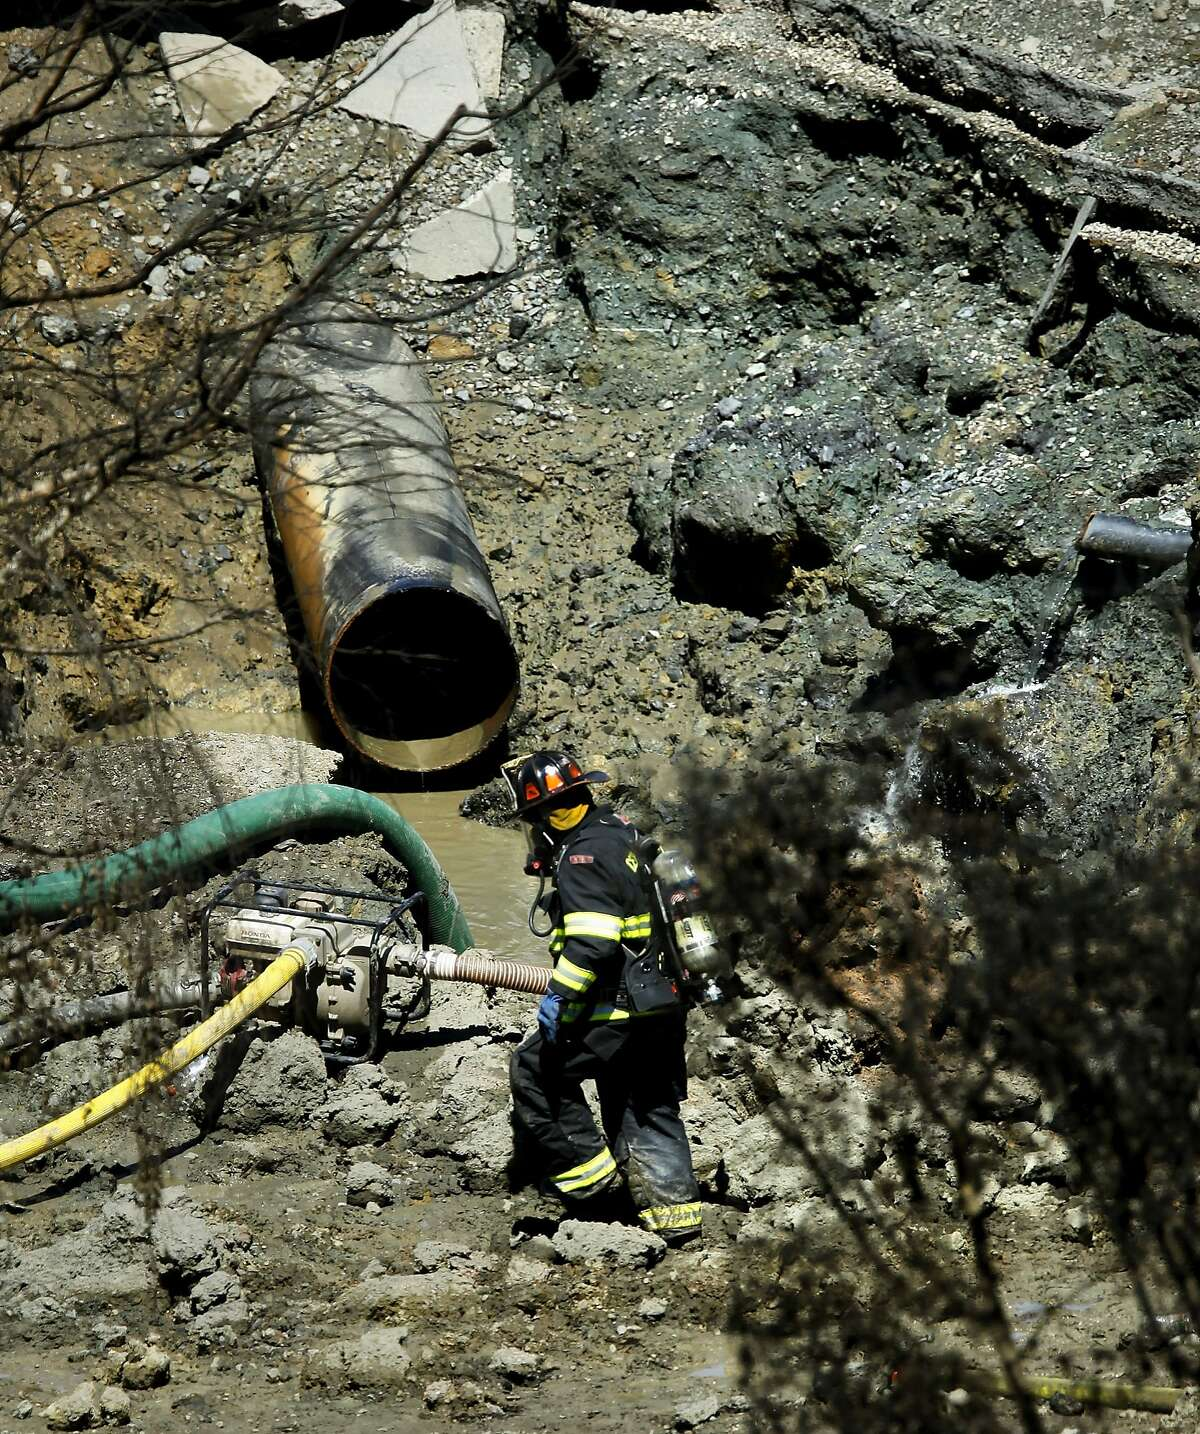 A firefighter at the blast site where the huge natural gas line in now exposed inside a large crater on Friday Sept. 10, 2010, in which an explosion and fire leveled the surrounding neighborhood the night before in San Bruno, Calif.